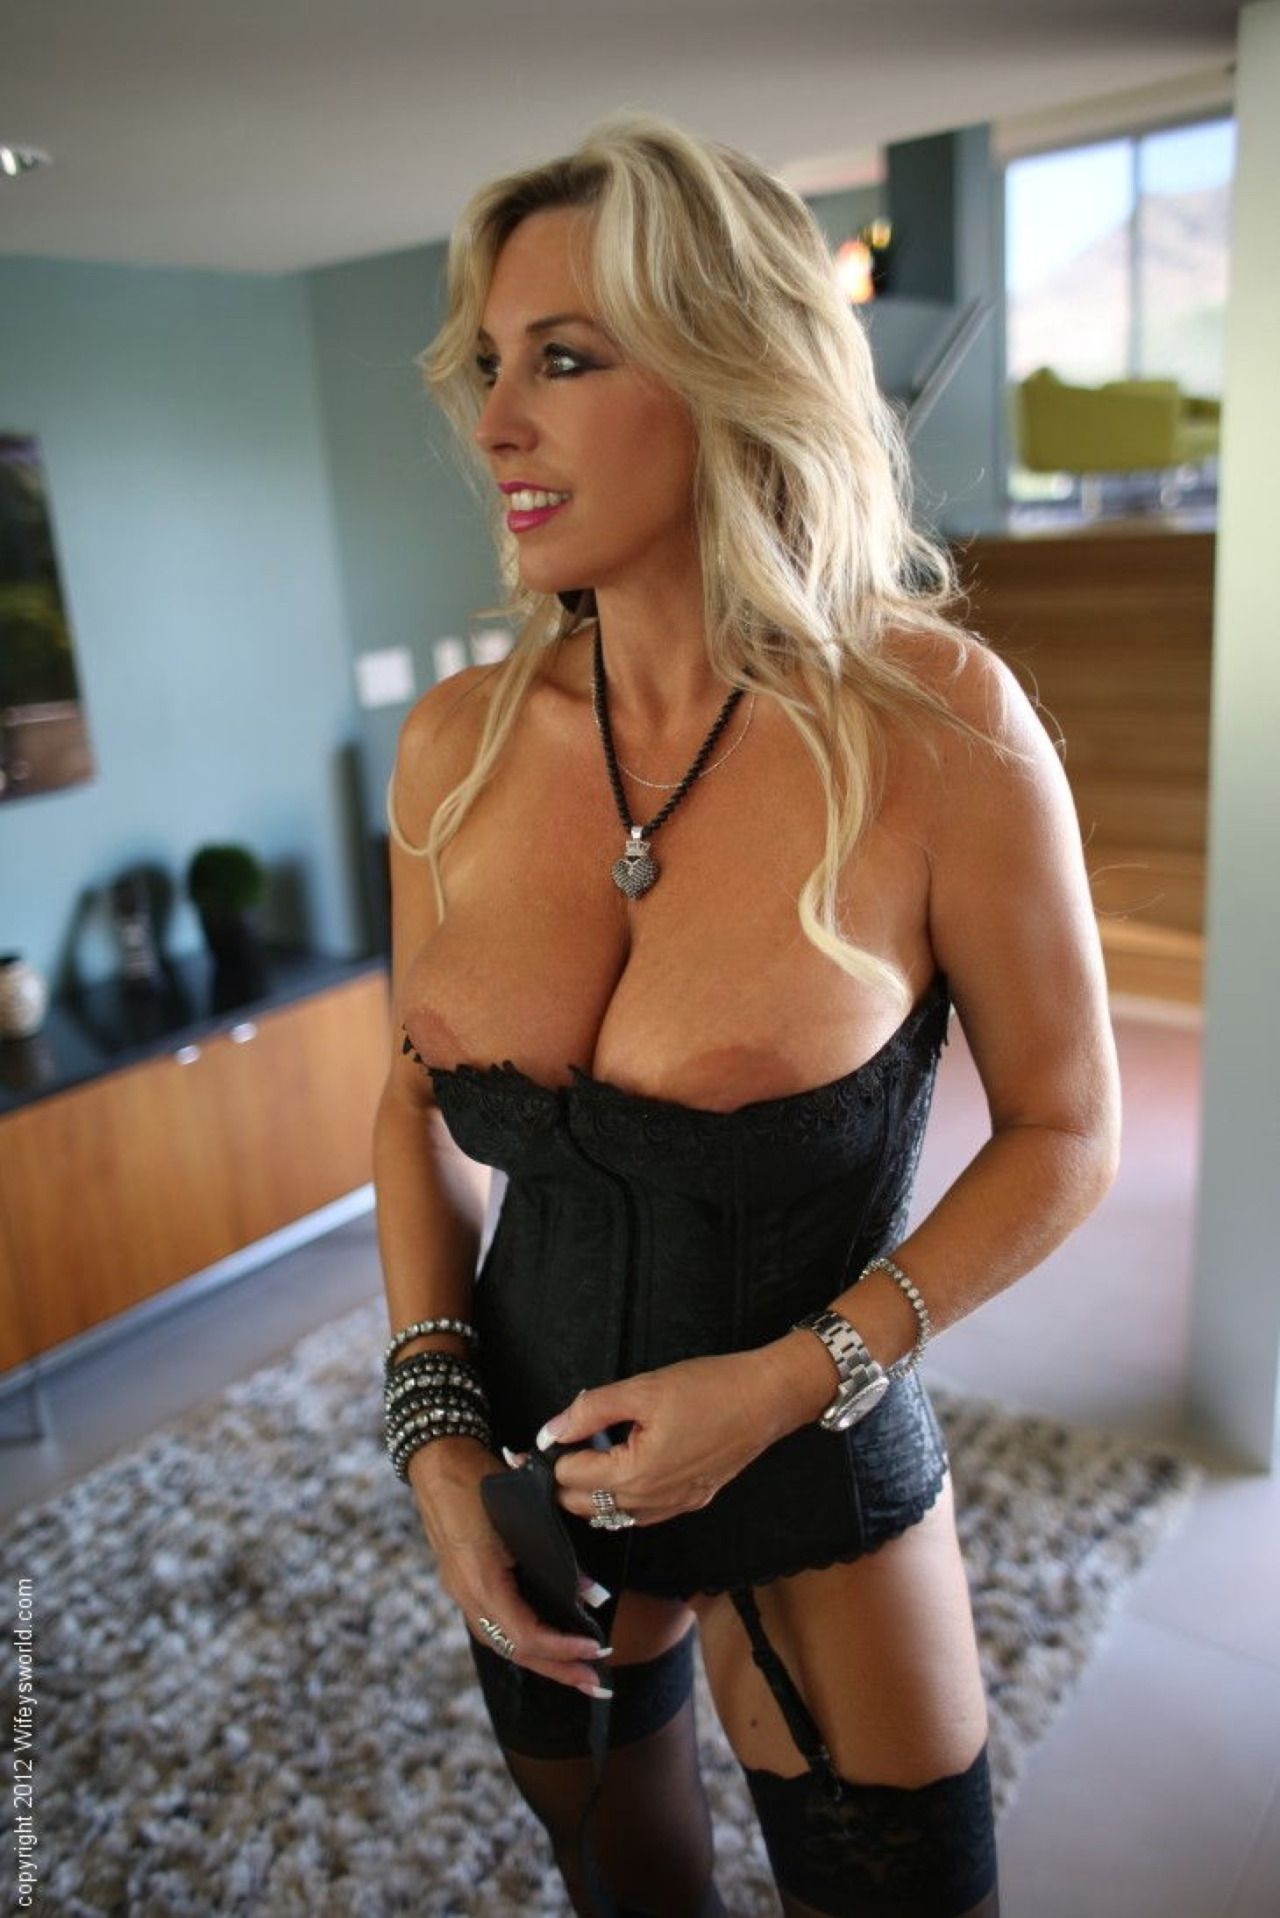 nsfw ------18 and older | milfs!!! | pinterest | swimsuits and black